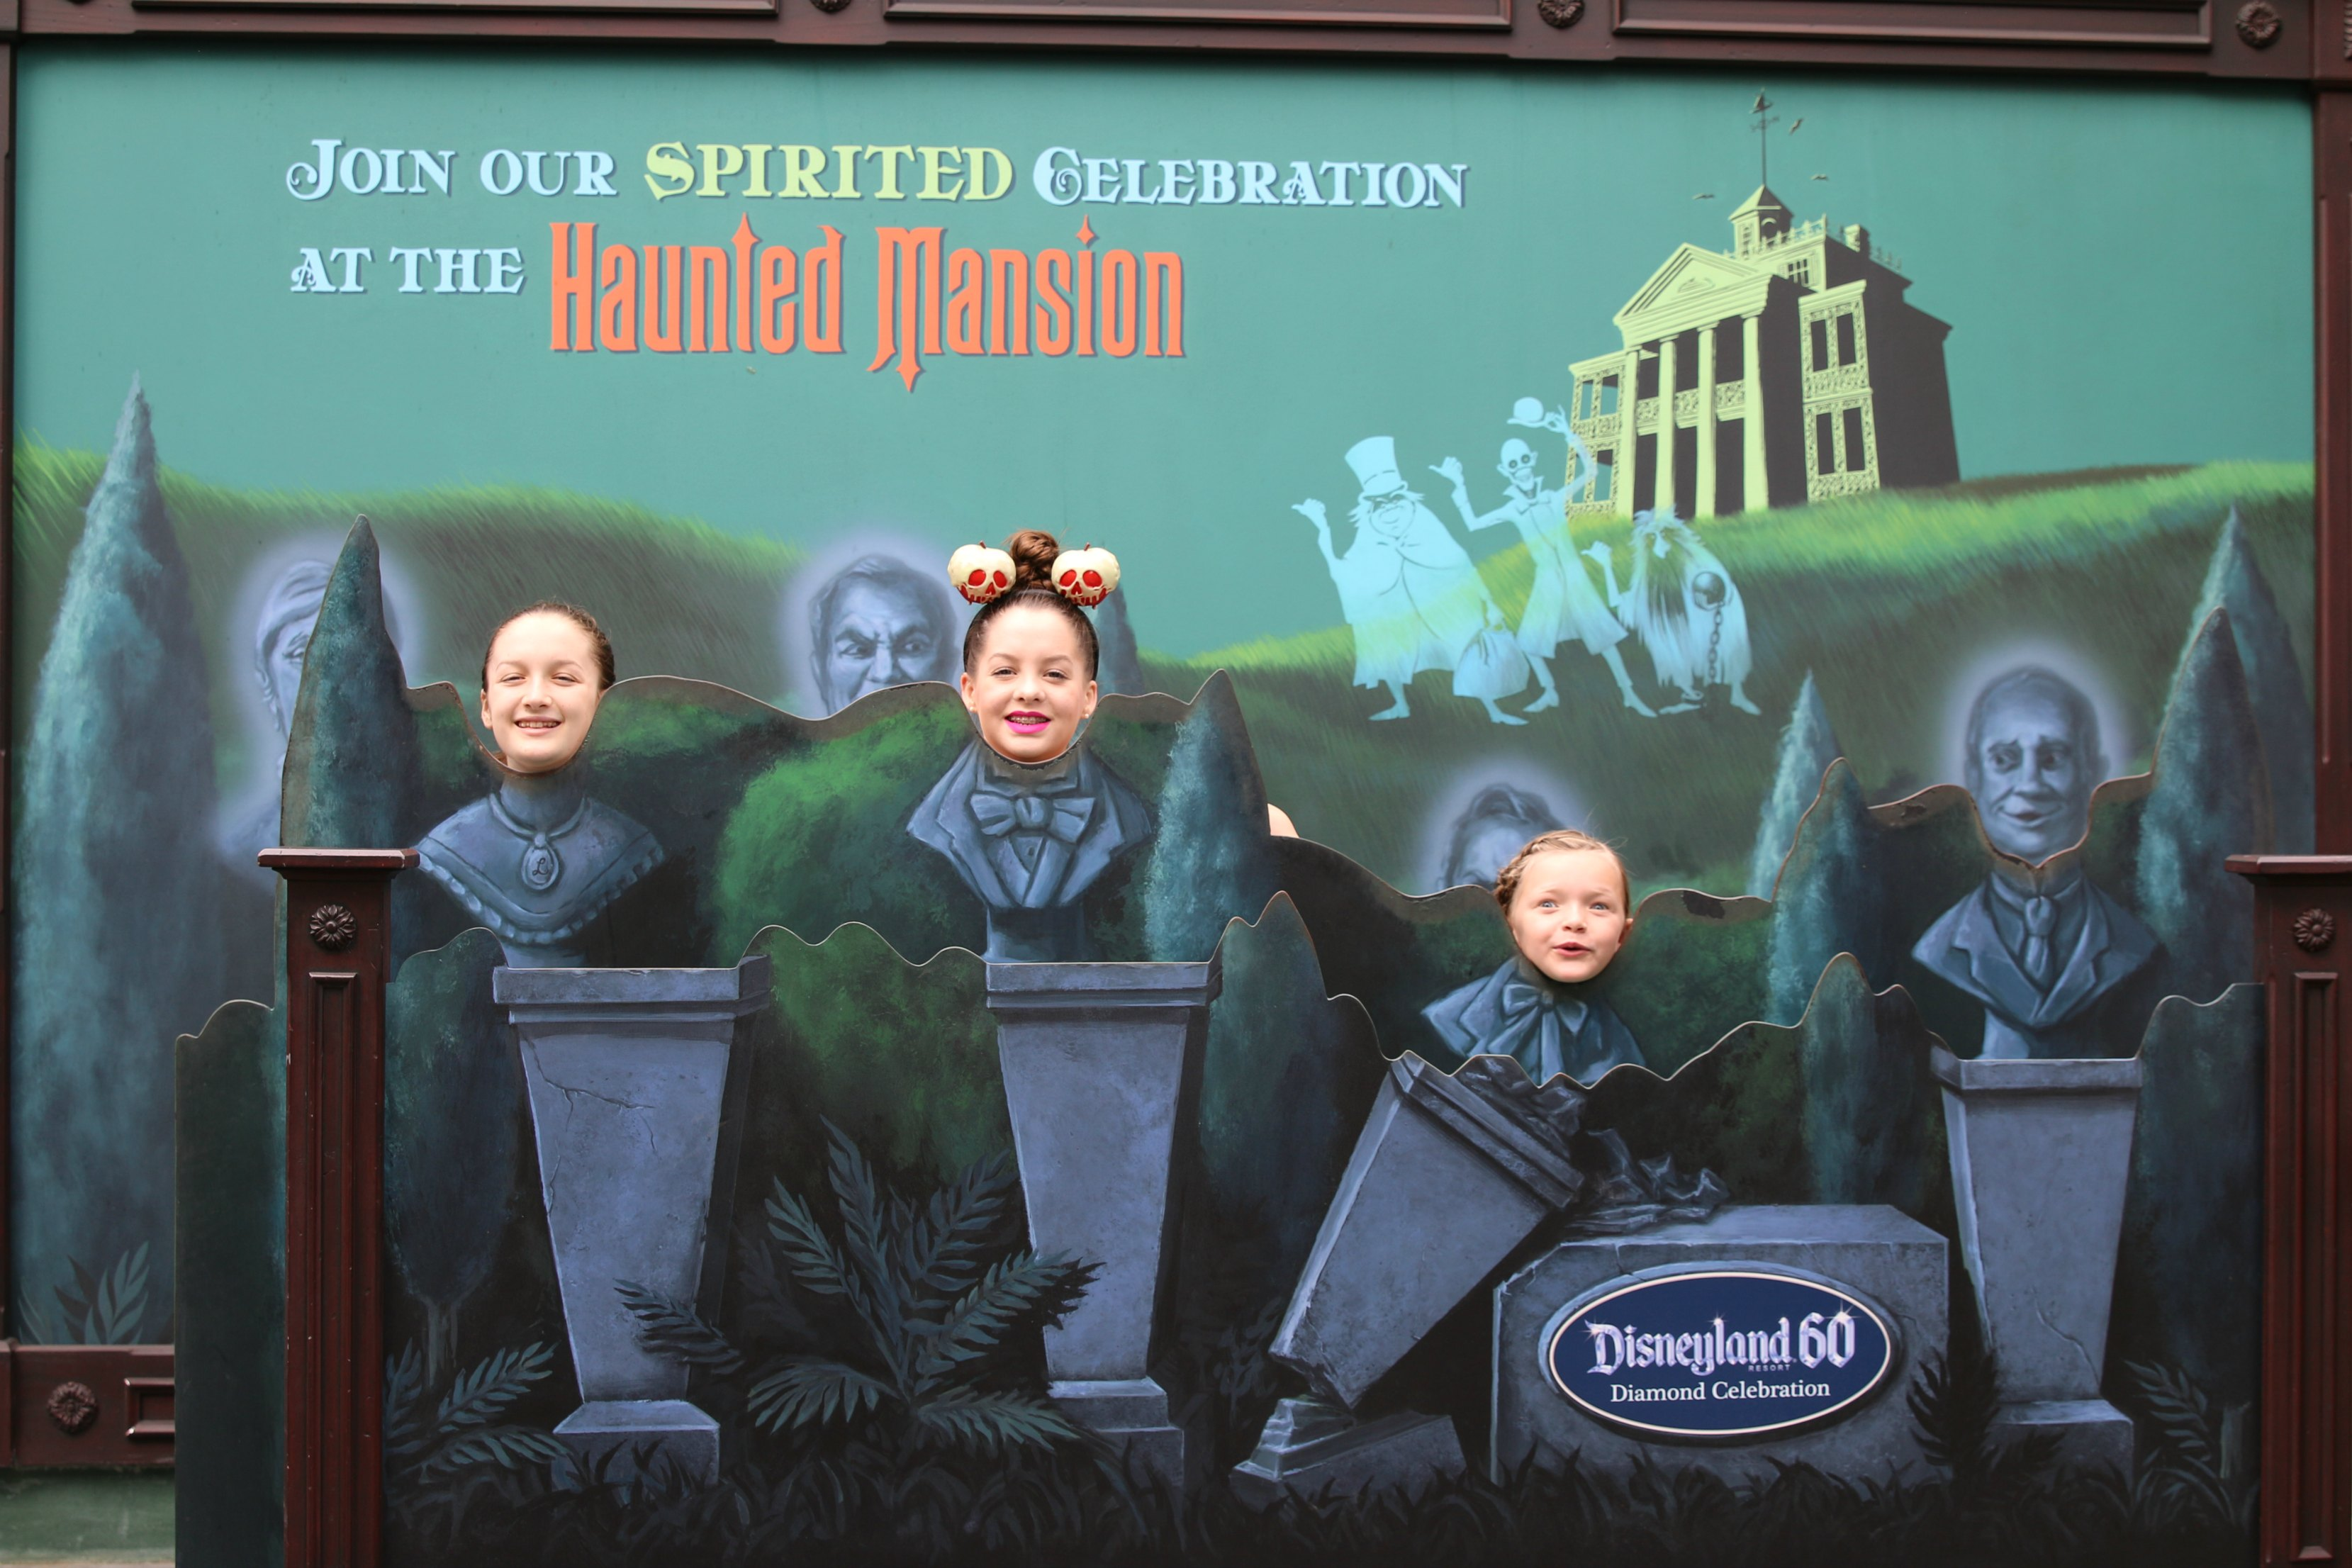 Disneyland 60 Haunted Mansion